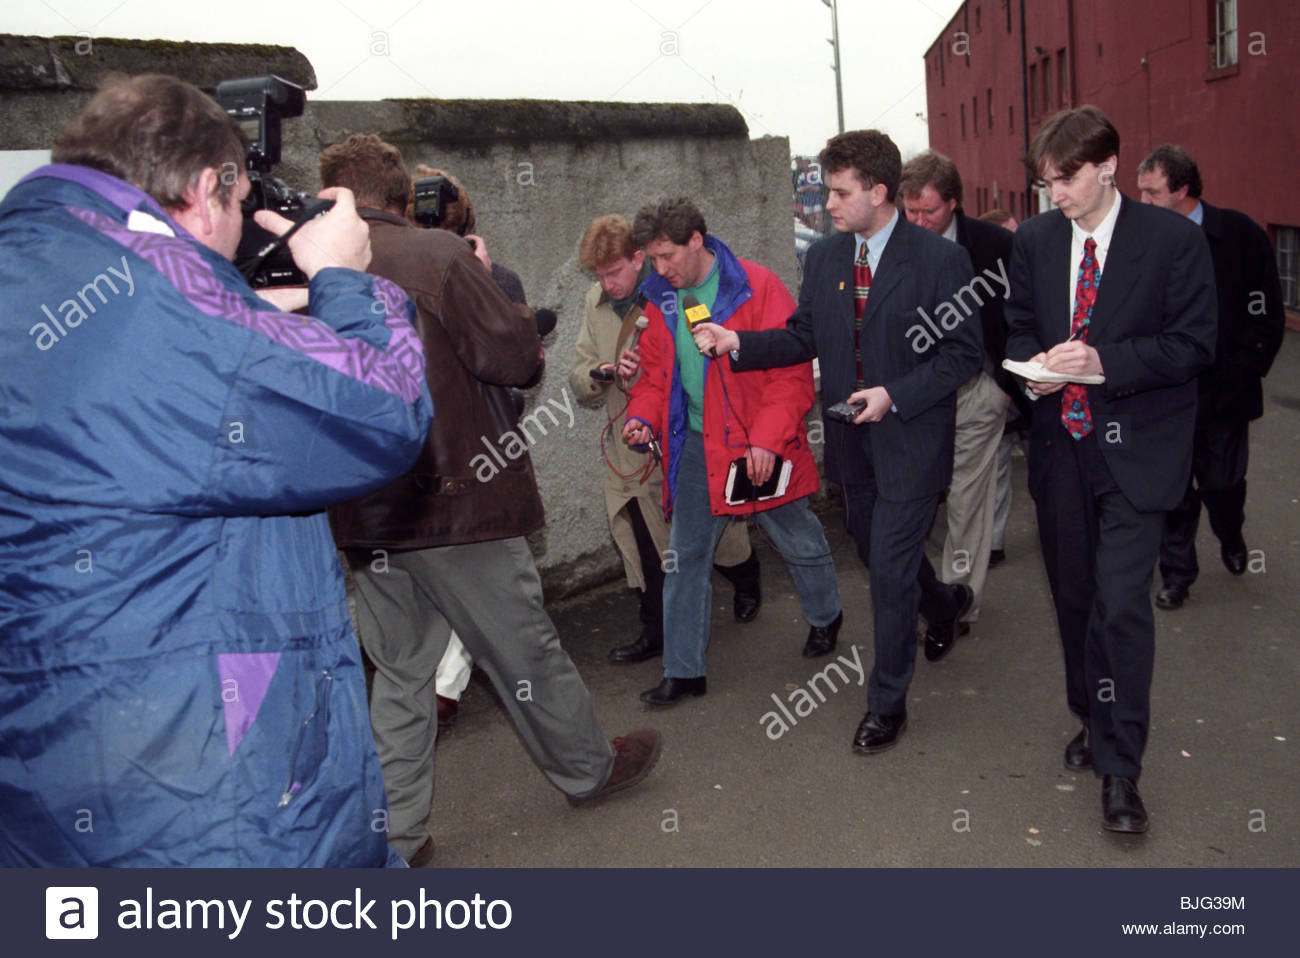 MARCH 1996 FALKIRK John Lambie (centre) causes a stir as he resings from his post as Falkirk manager - Stock Image